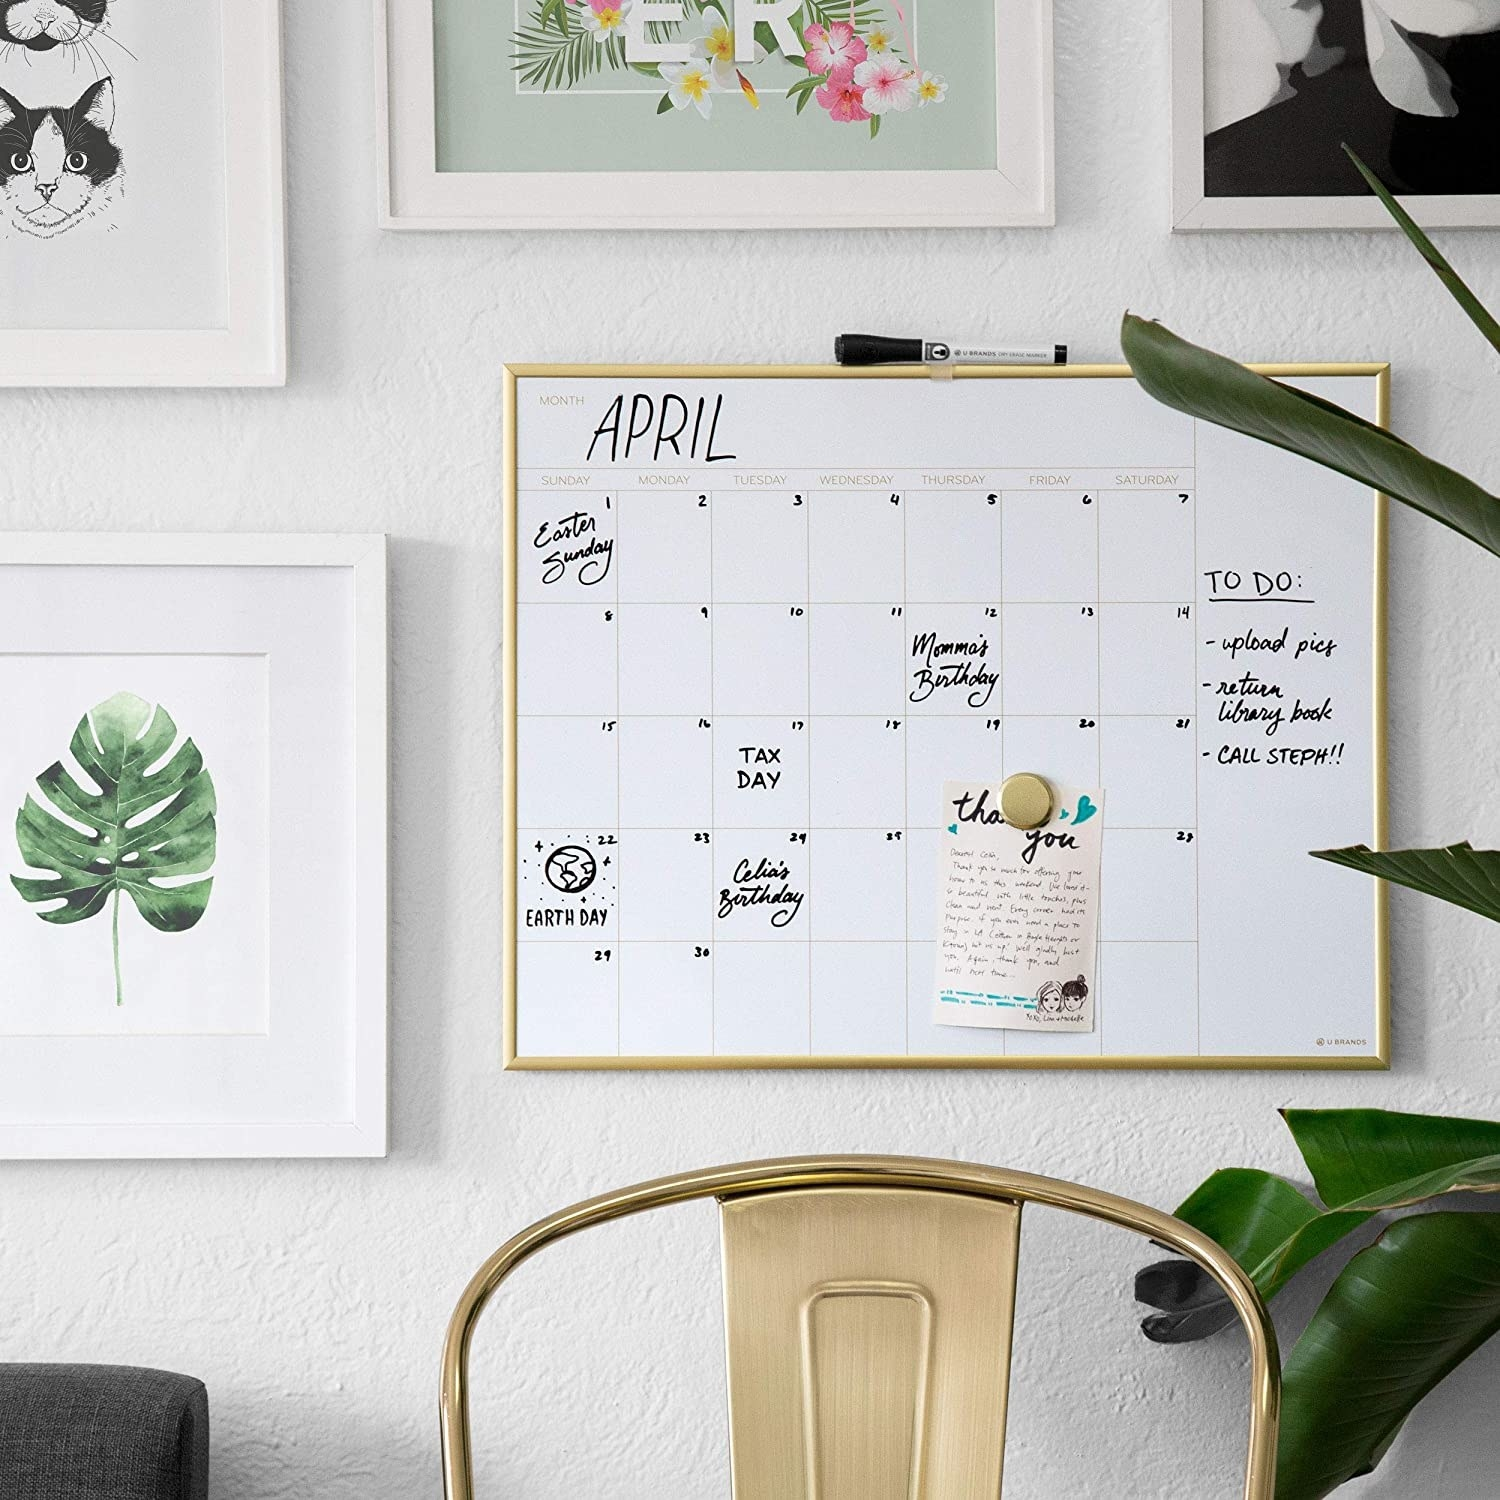 The gold framed magnetic white board hung on a wall with examples of calendar markings and a separate column for to-do lists